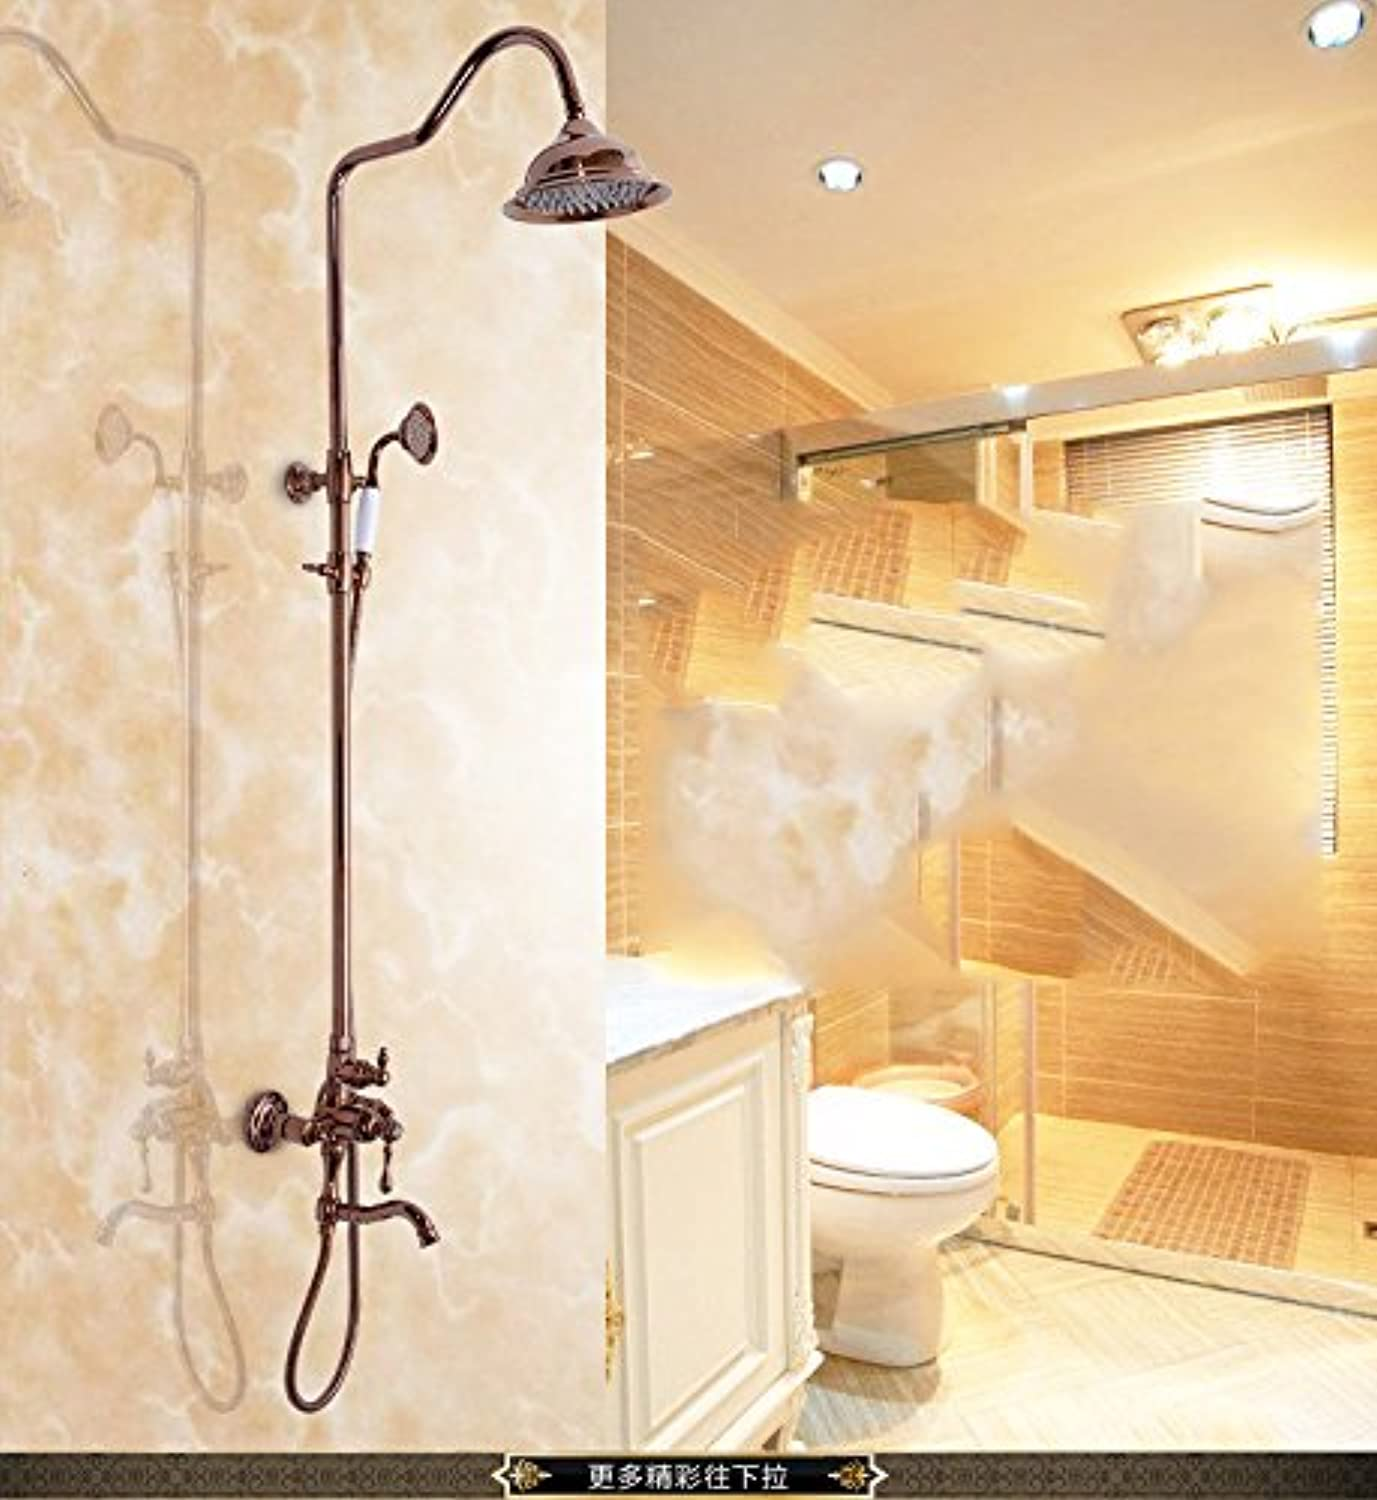 WVXgold full copper gold Plated shower head set European style shower set shower shower faucet